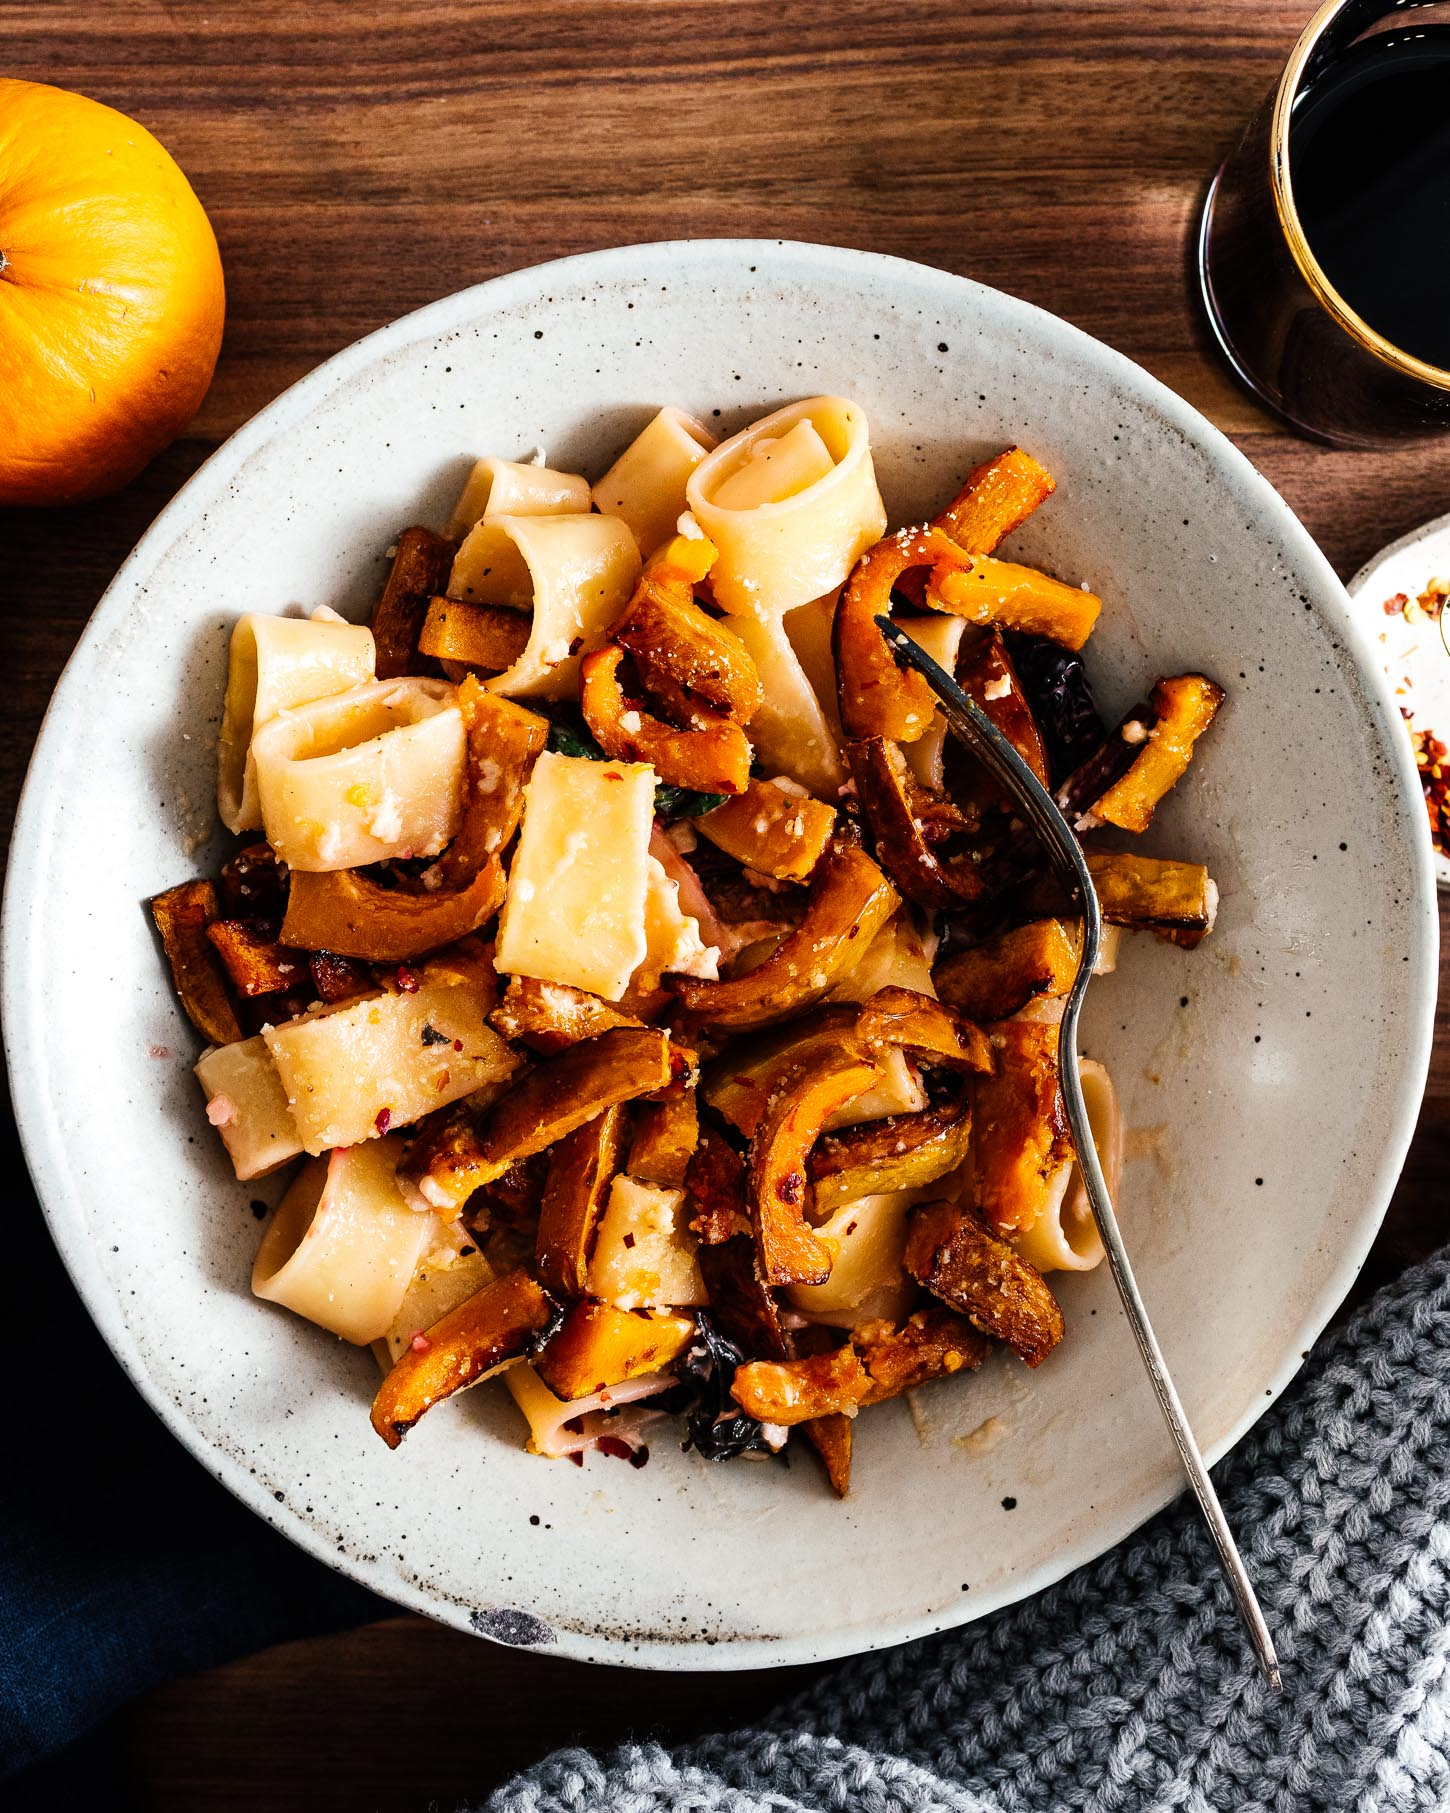 A warm and comforting bowl of fall pasta: pan roasted honeynut squash creamy garlicky noodles. #pasta #dinner #recipe #garlic #honeynutsquash #honeynut #squash